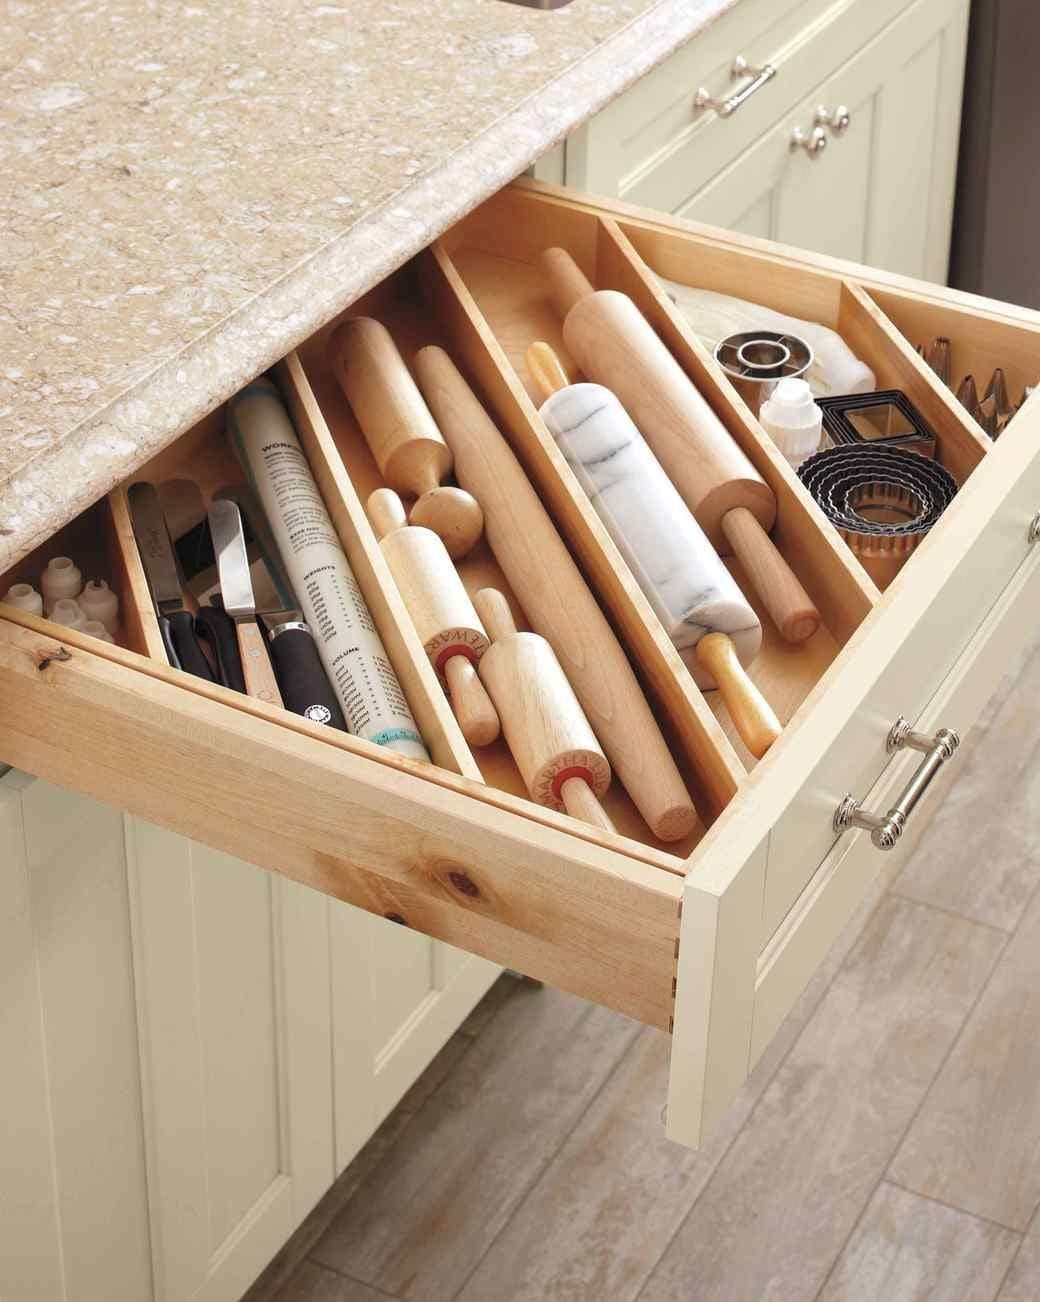 Diy Ideas For Impeccably Organized Drawers Kitchen Drawer Organization Kitchen Drawers Diy Countertops